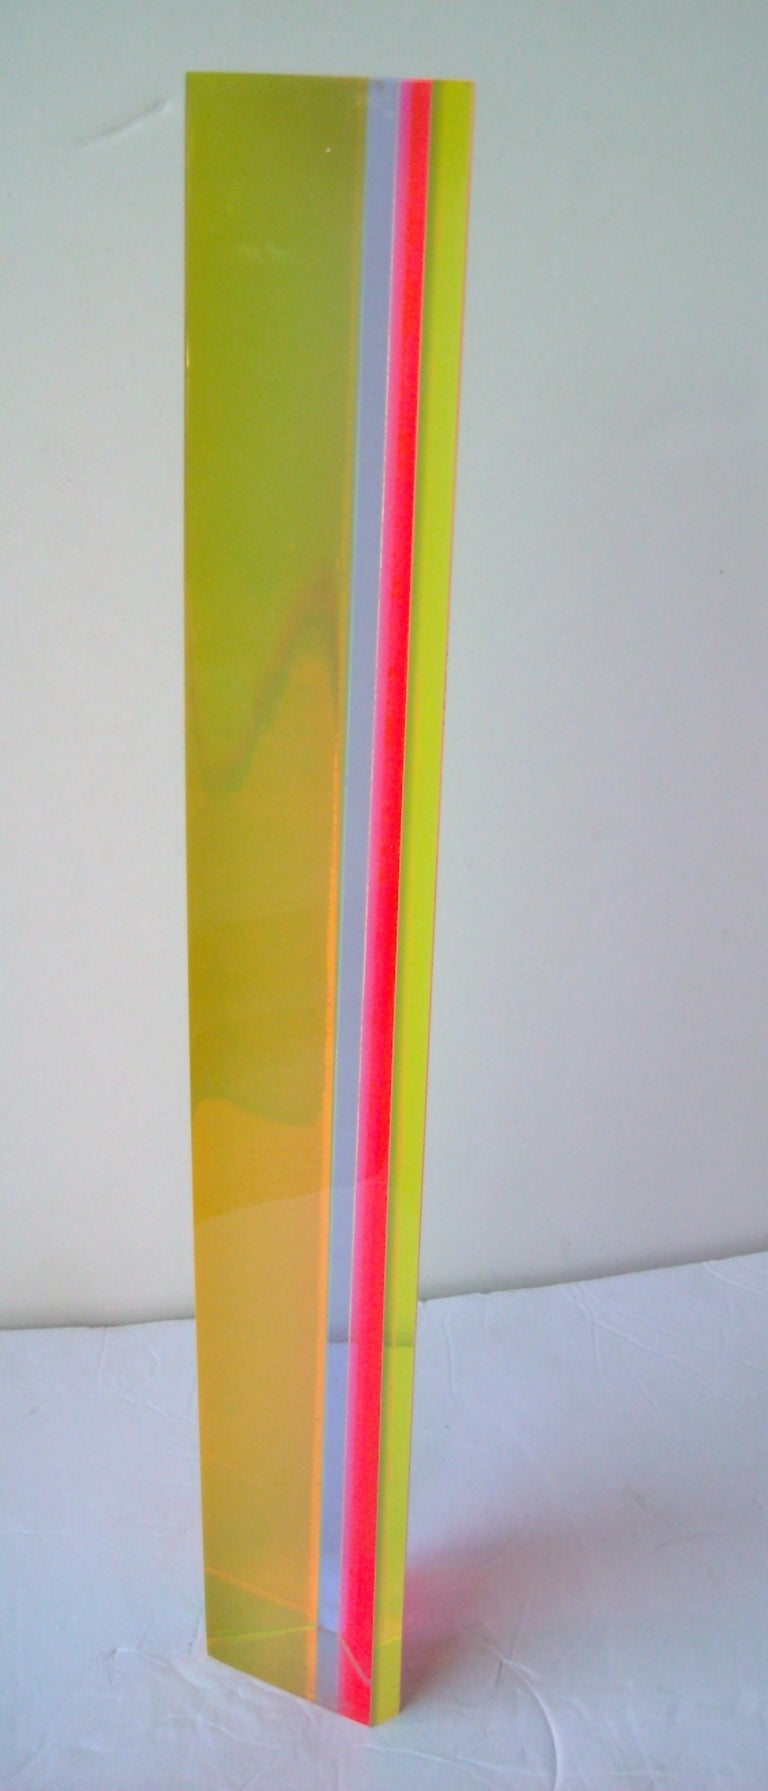 Post-Modern Velizar Mihich, Vasa acrylic hexagonal column sculpture, Signed, Dated For Sale